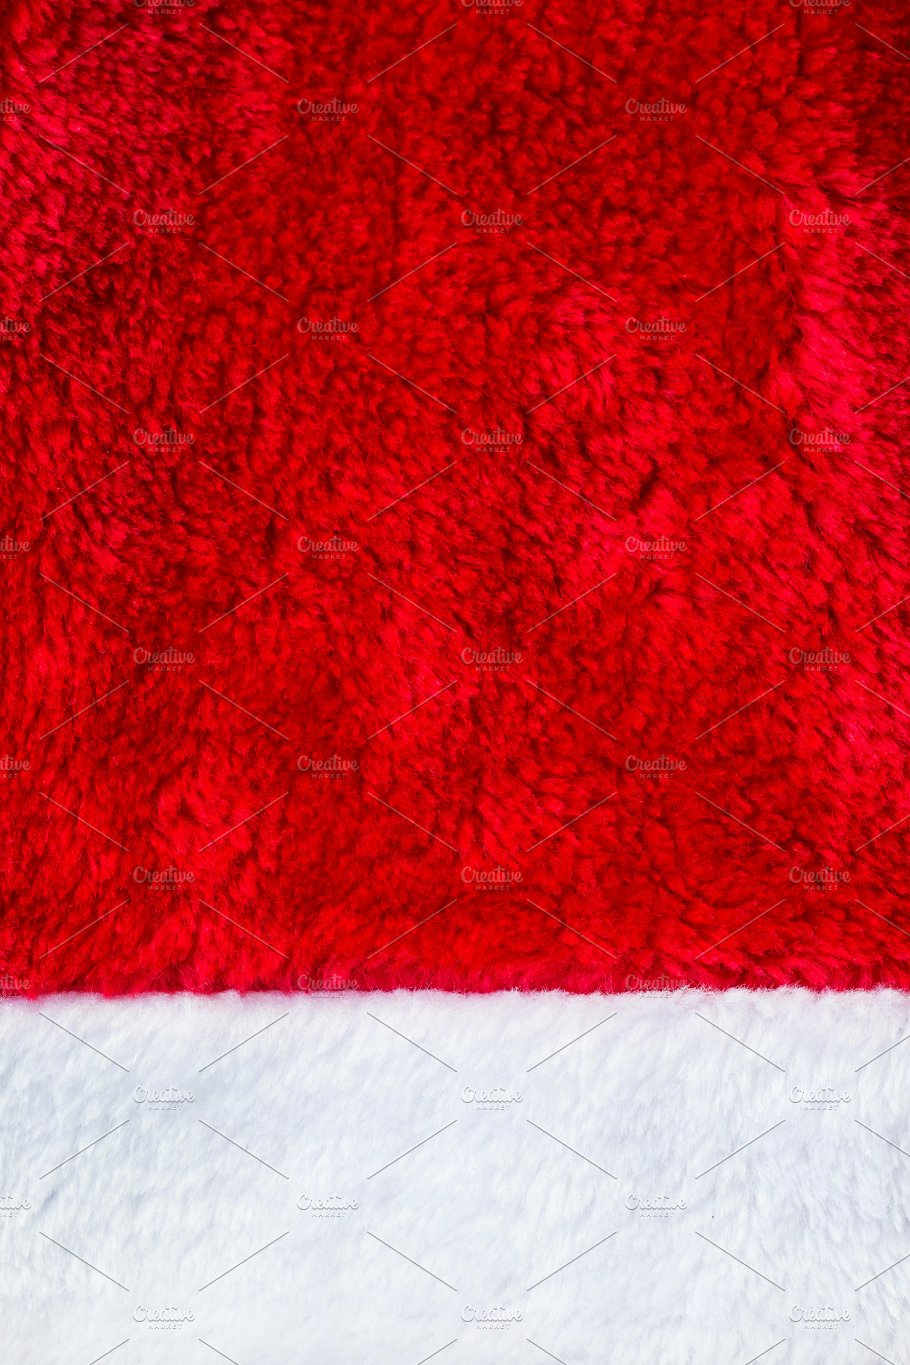 close up red and white santa claus hat texture to backround photos